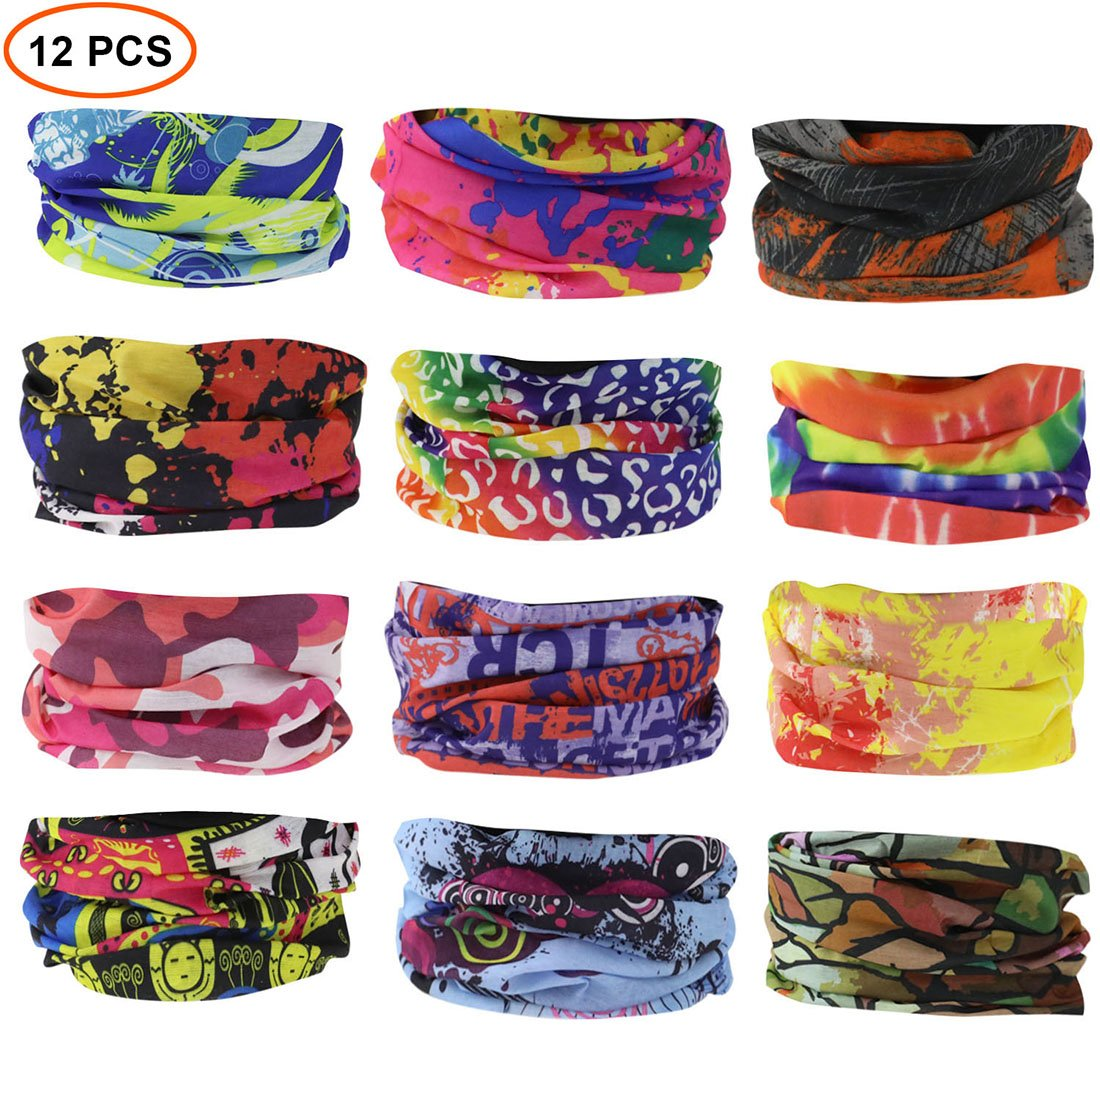 QBStrong 12PCS Bandana Face Mask, Elastic Seamless Headband Scarf with UV Resistence for Men Women Kids for Fishing Cycling Running